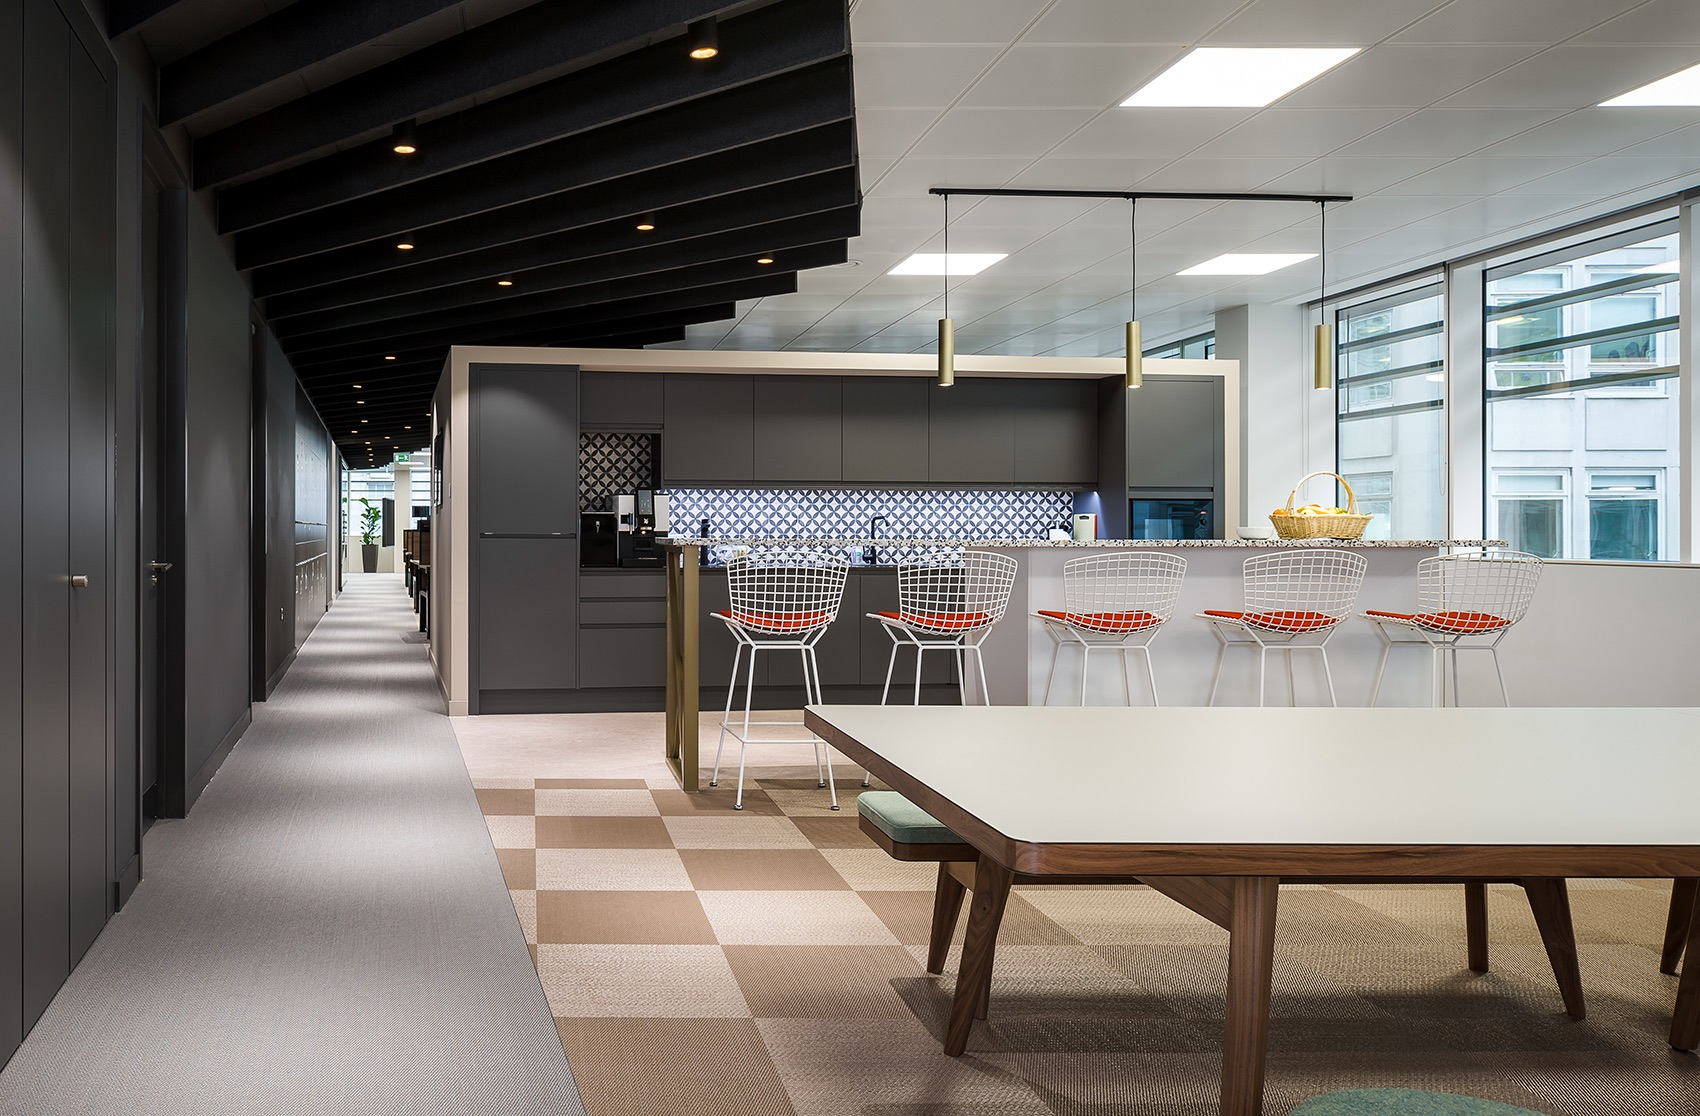 A Look Inside Private Global Equity Investment Firm Offices in London